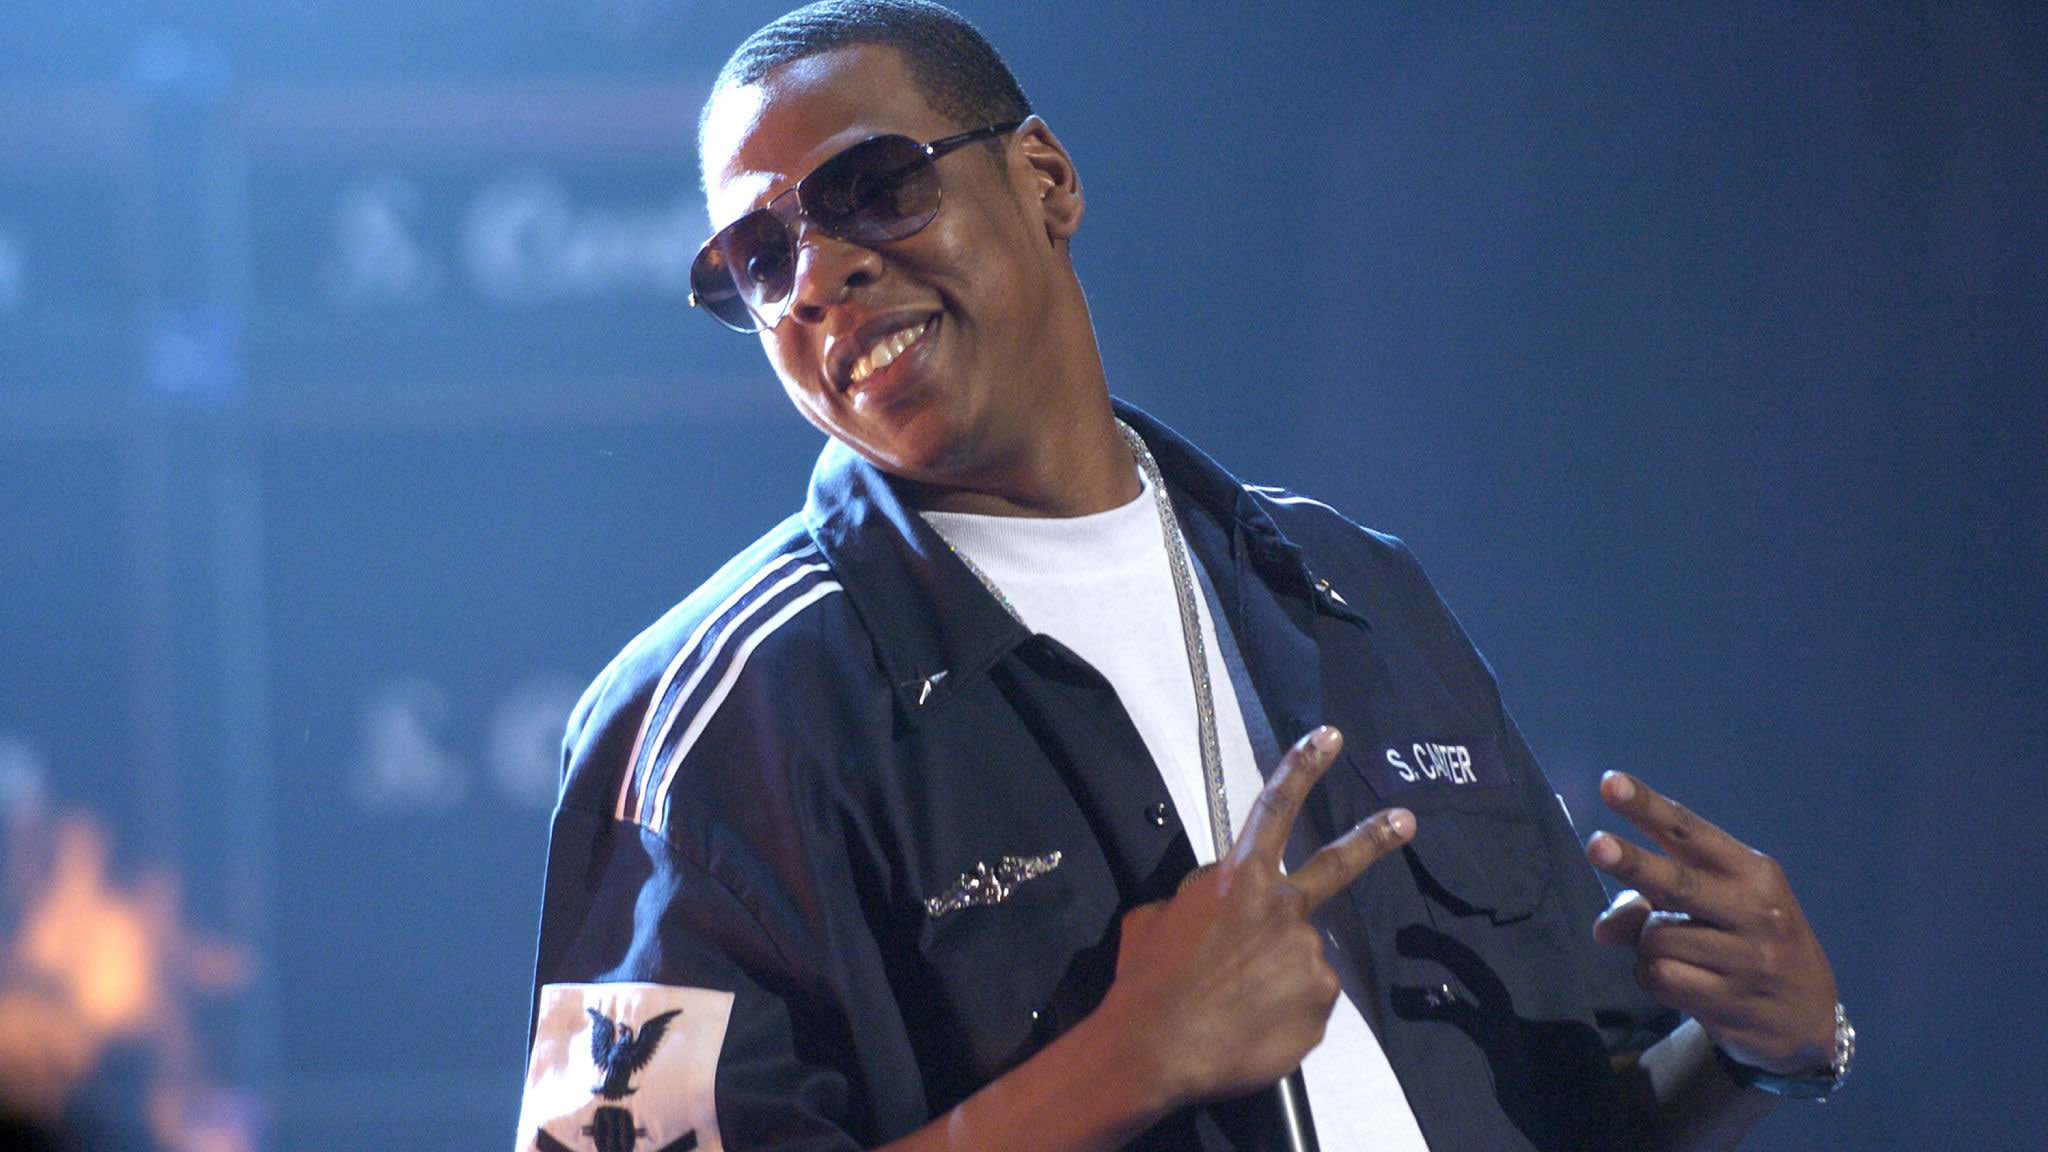 99 Problems — Jay-Z's song has been called 'the story of